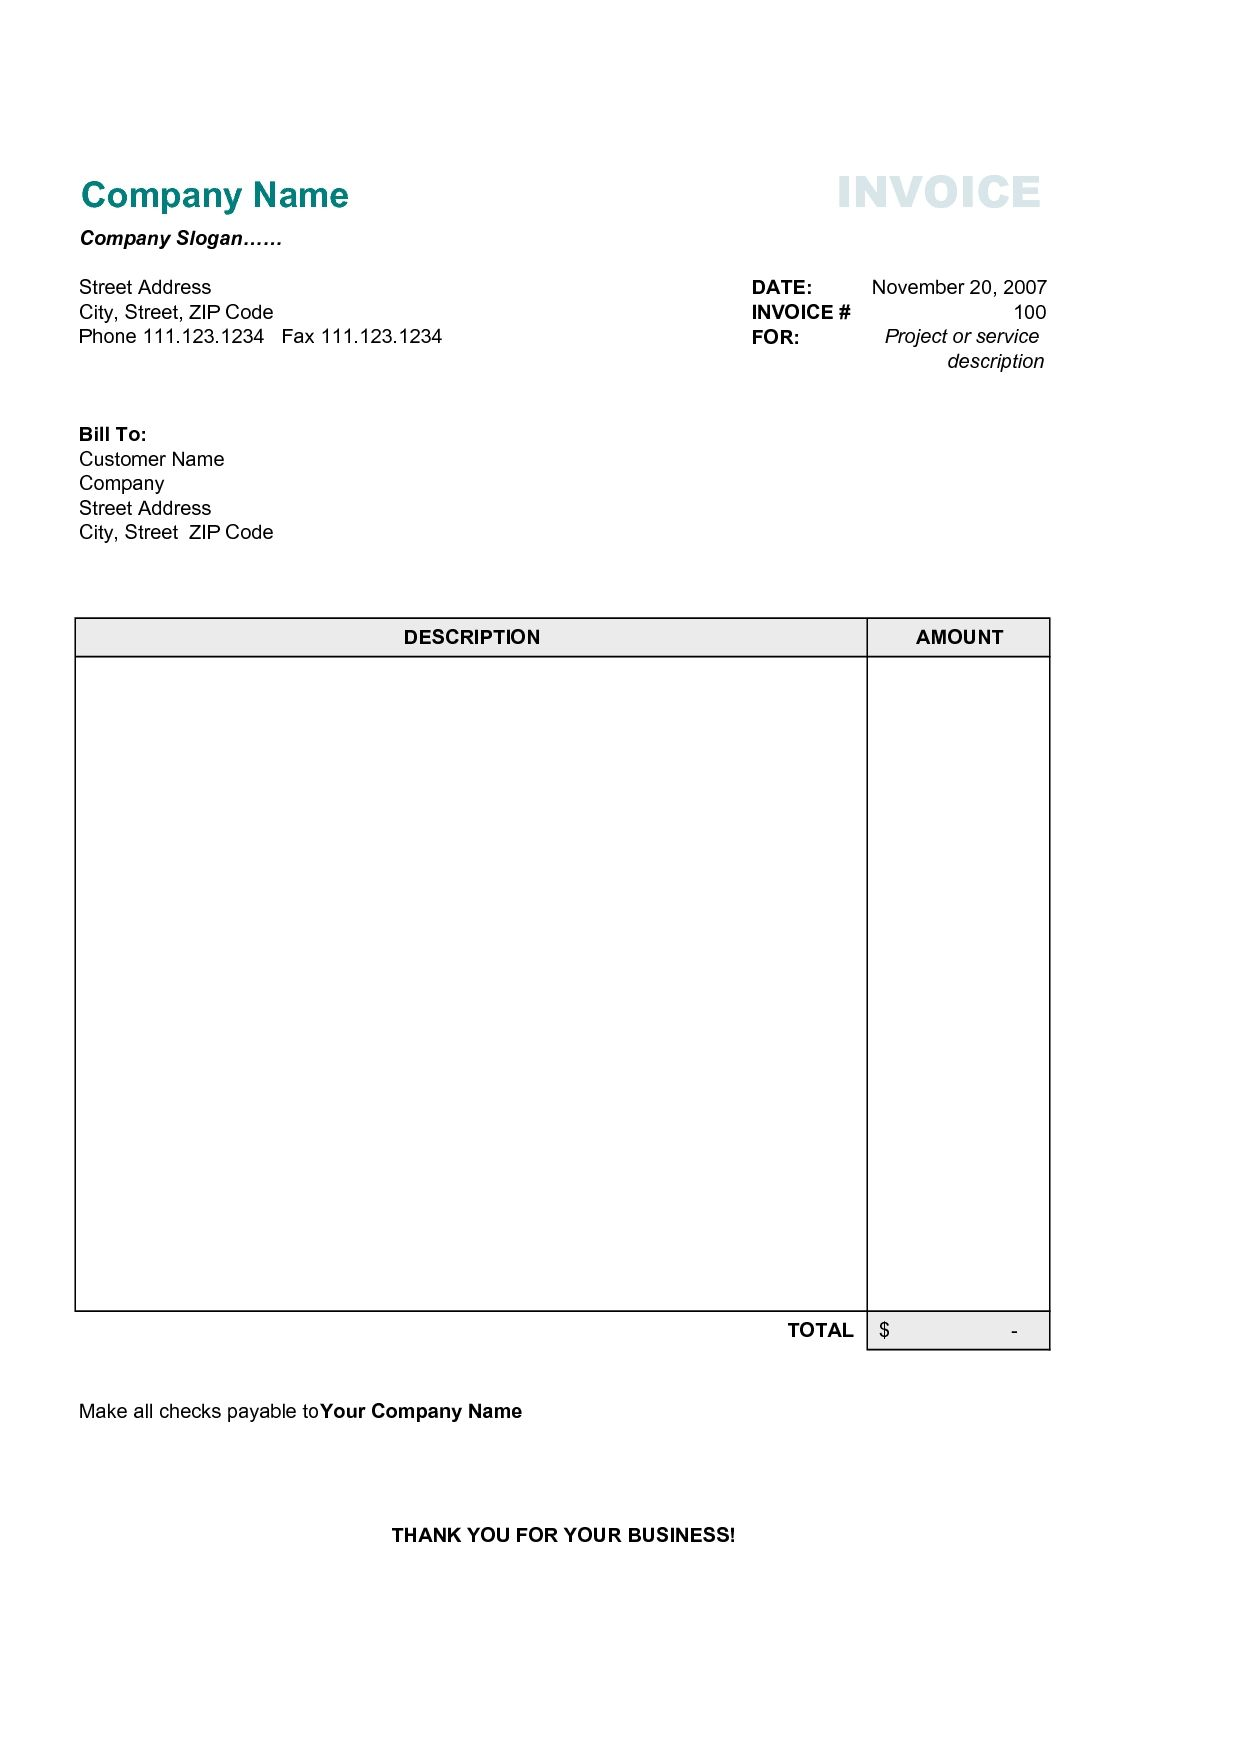 Free Business Invoice Template Best Business Template Free Invoice - Free invoice templete for service business